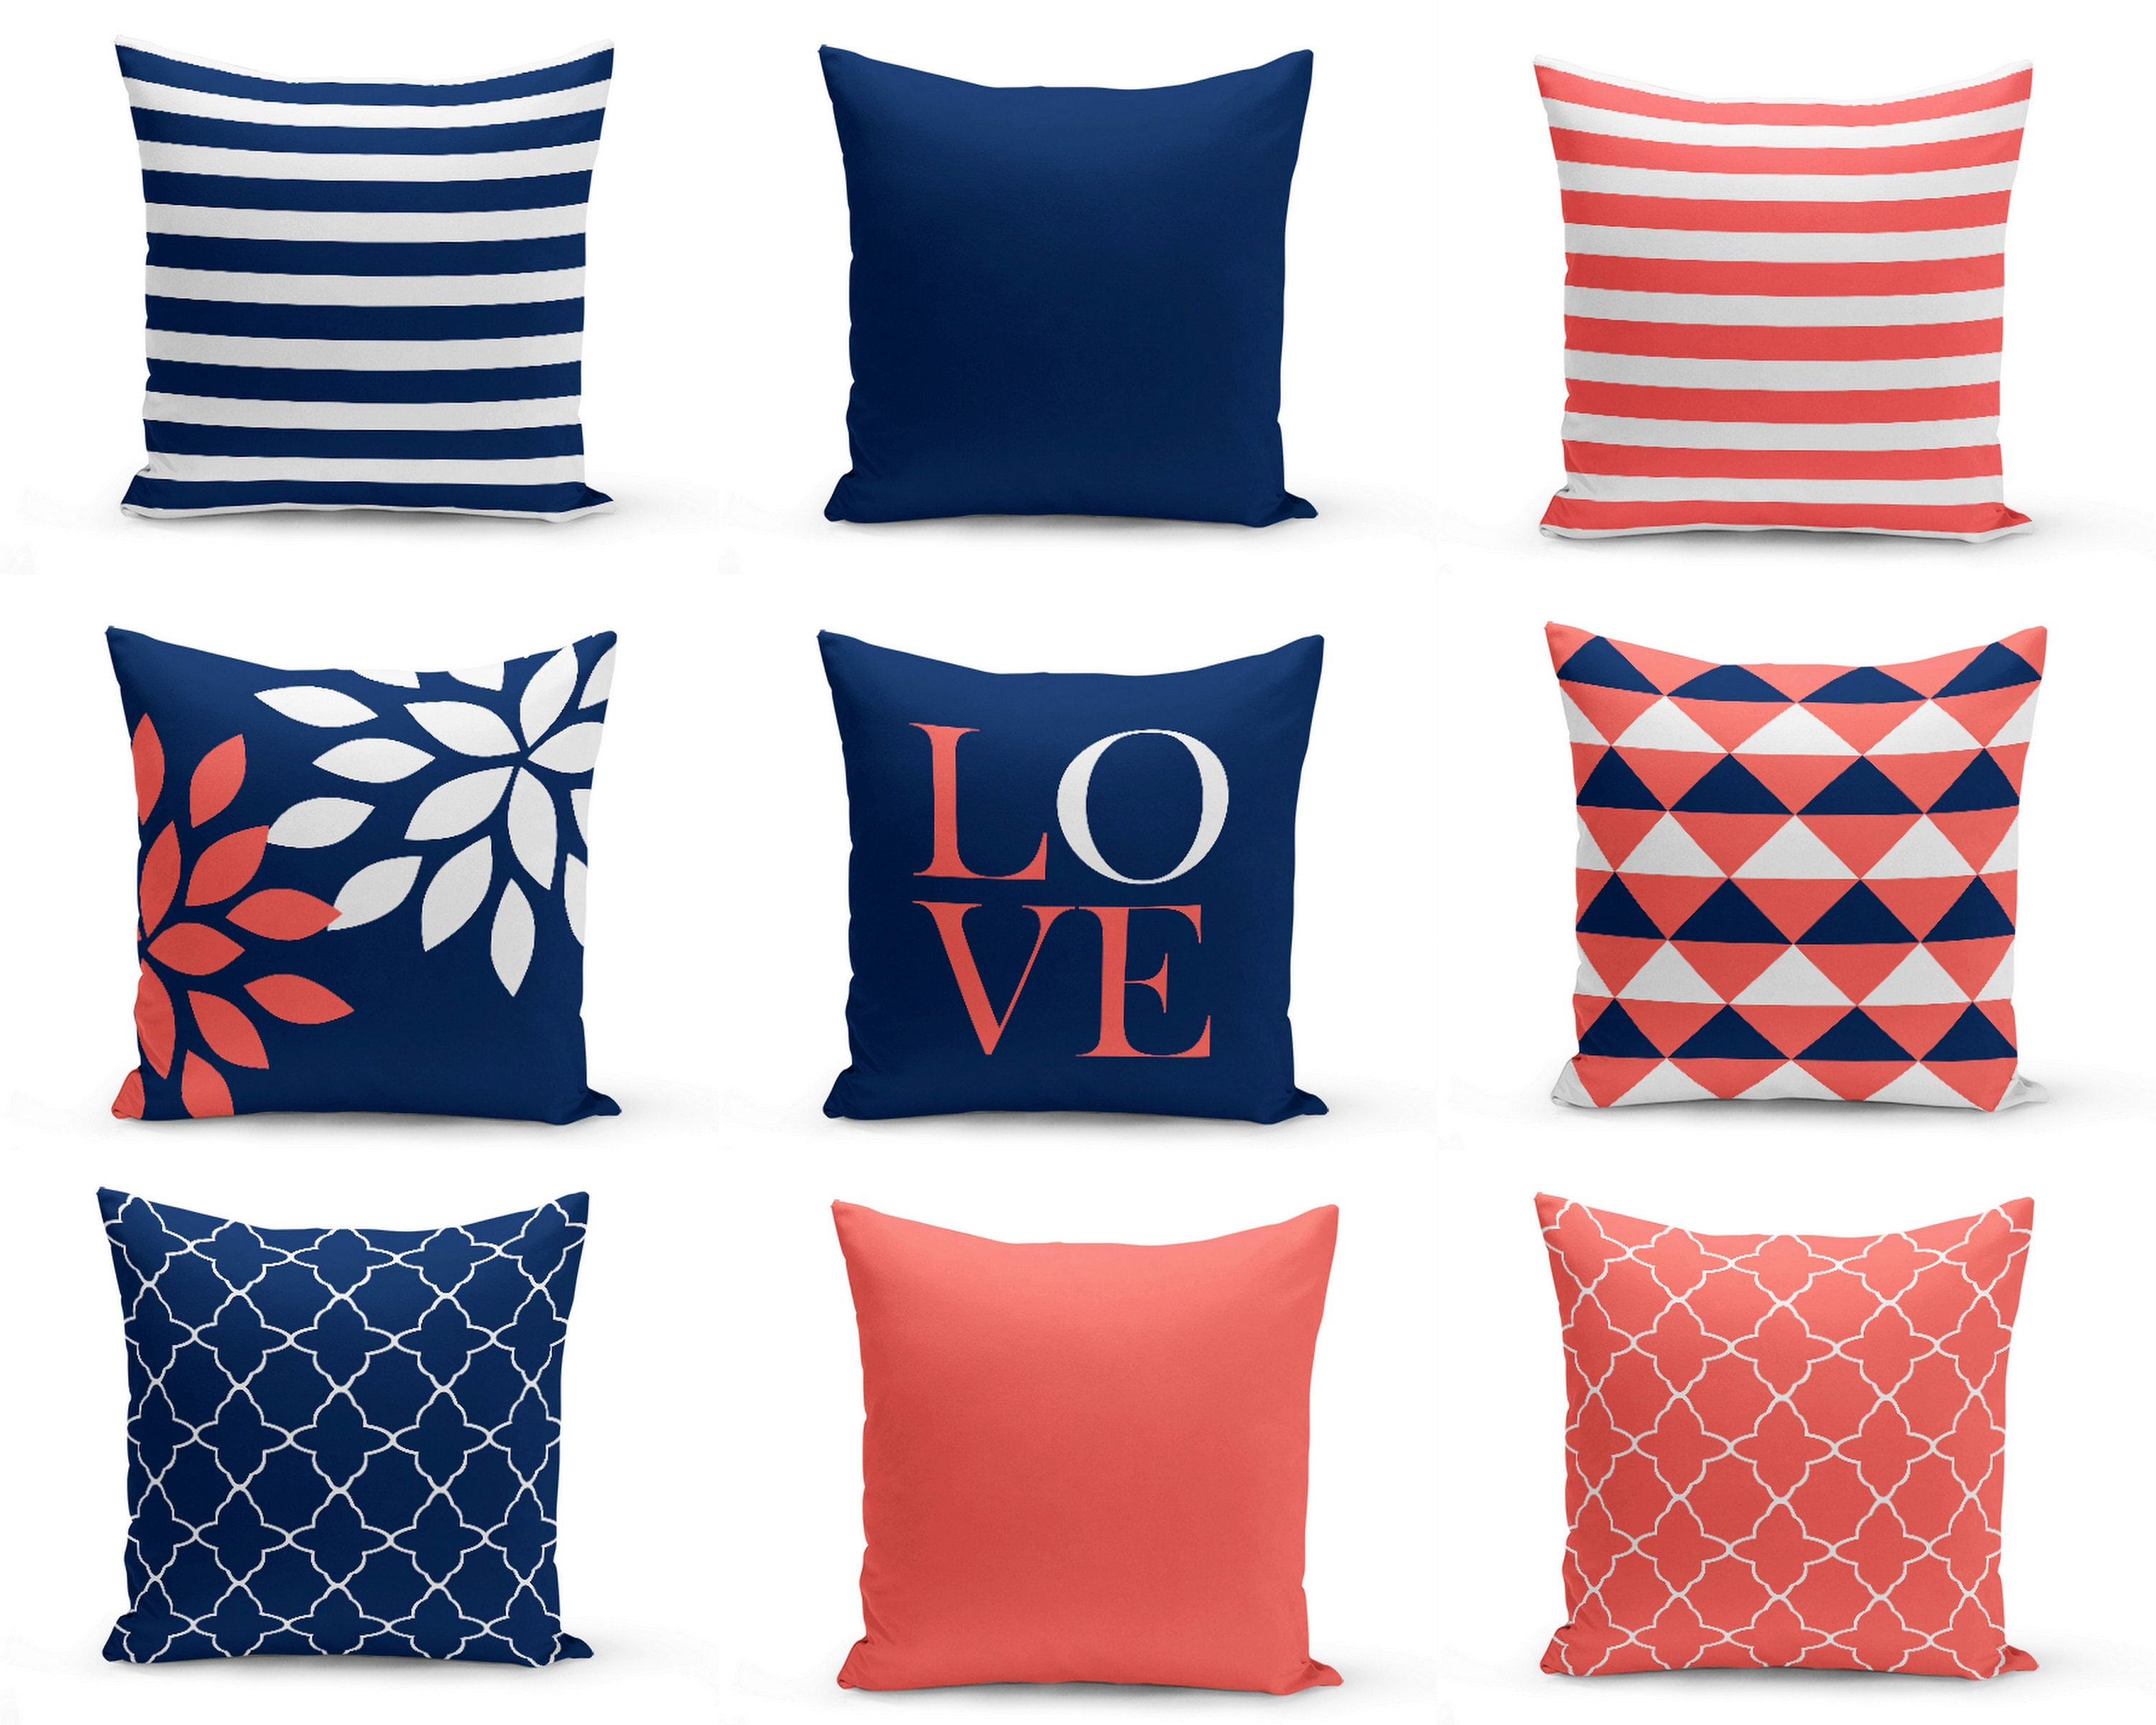 Throw Pillow Covers Navy Coral Pillows Cushion Covers Home